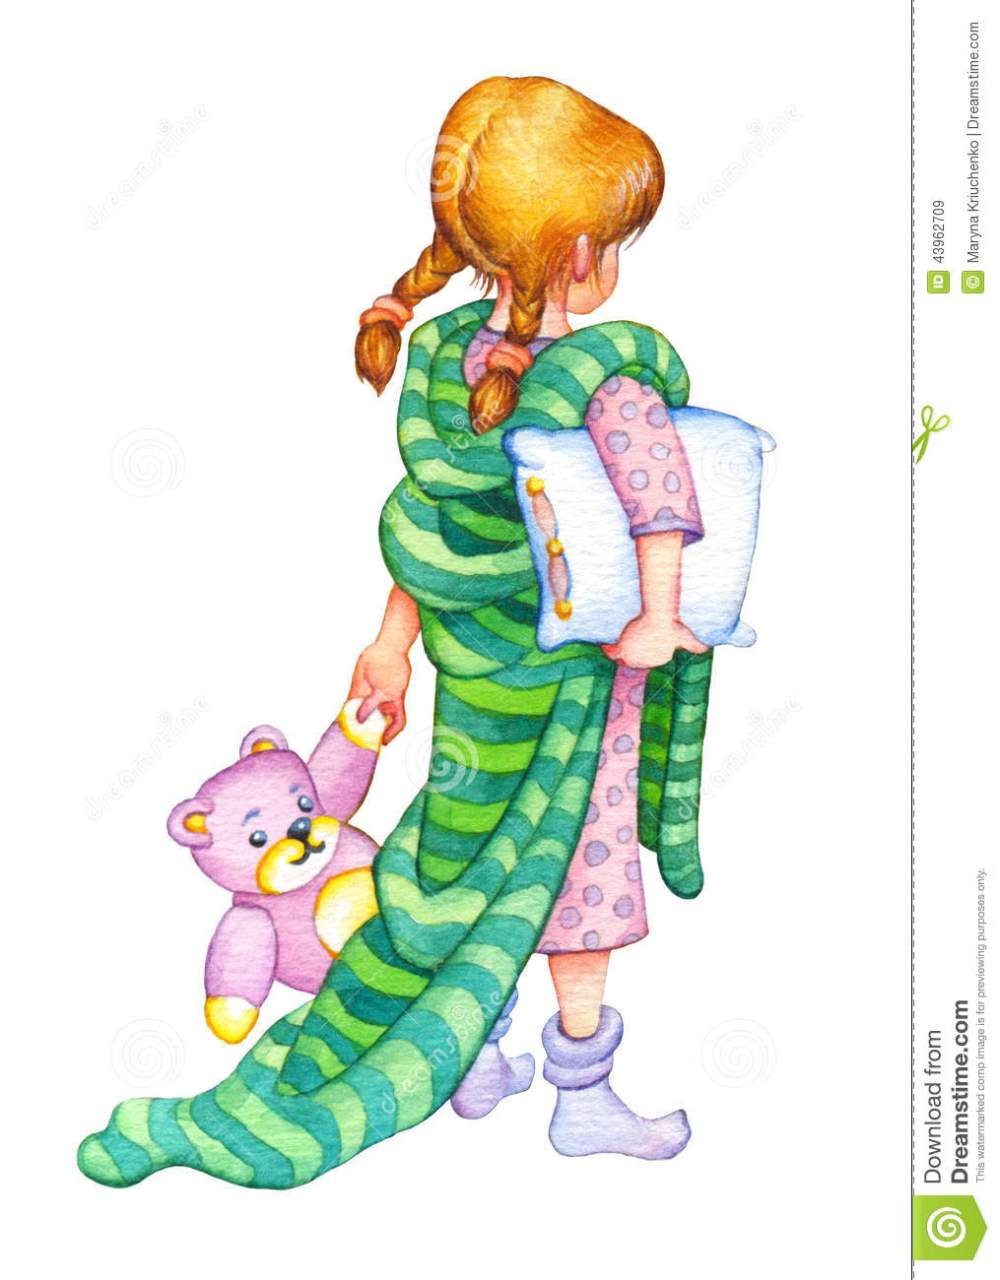 medium resolution of watercolor cute drawing in style of book illustration isolated on white background girl in a nightgown with a blanket over her shoulders a pillow under